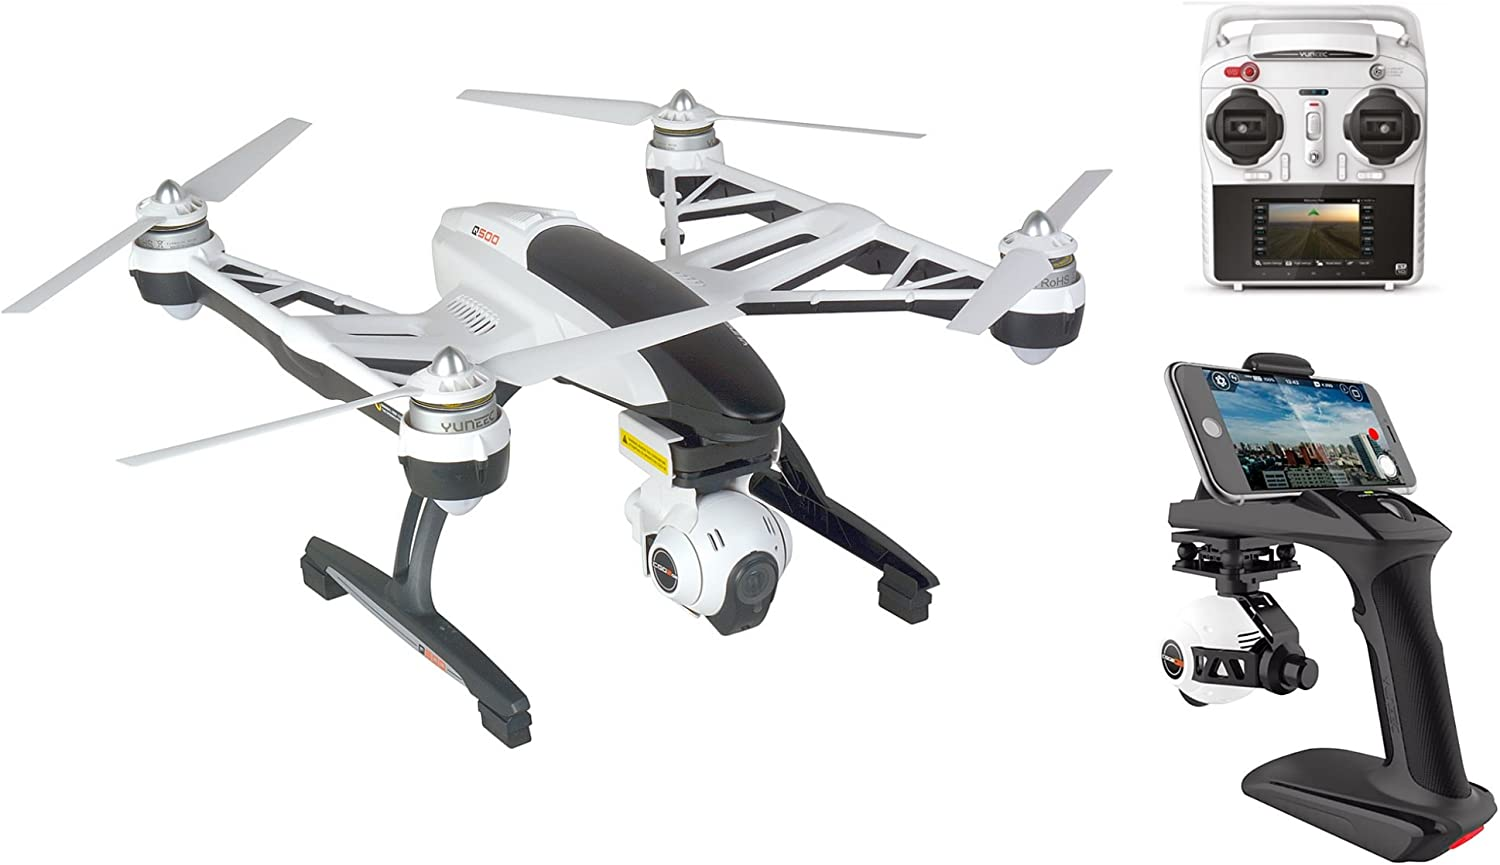 Yuneec Q500 Typhoon Multicopter Set Including Camera Photo